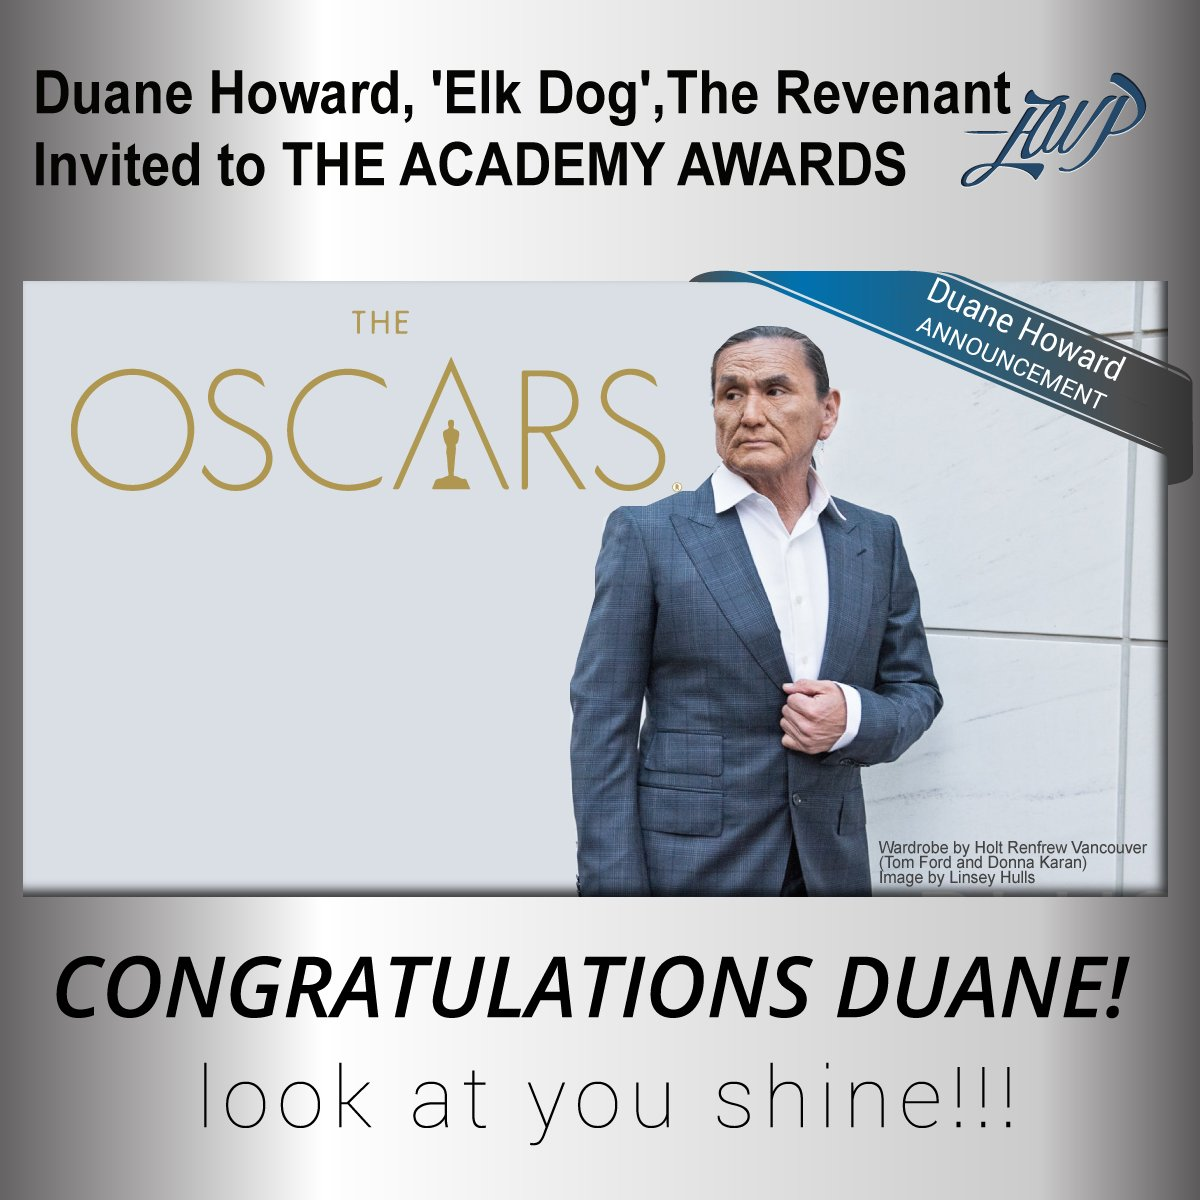 Big news! @DuaneE_Howard An invitation to join @RevenantMovie nominees at @TheAcademy is exciting! #TheOscars2016 https://t.co/QCwE2K2ygE